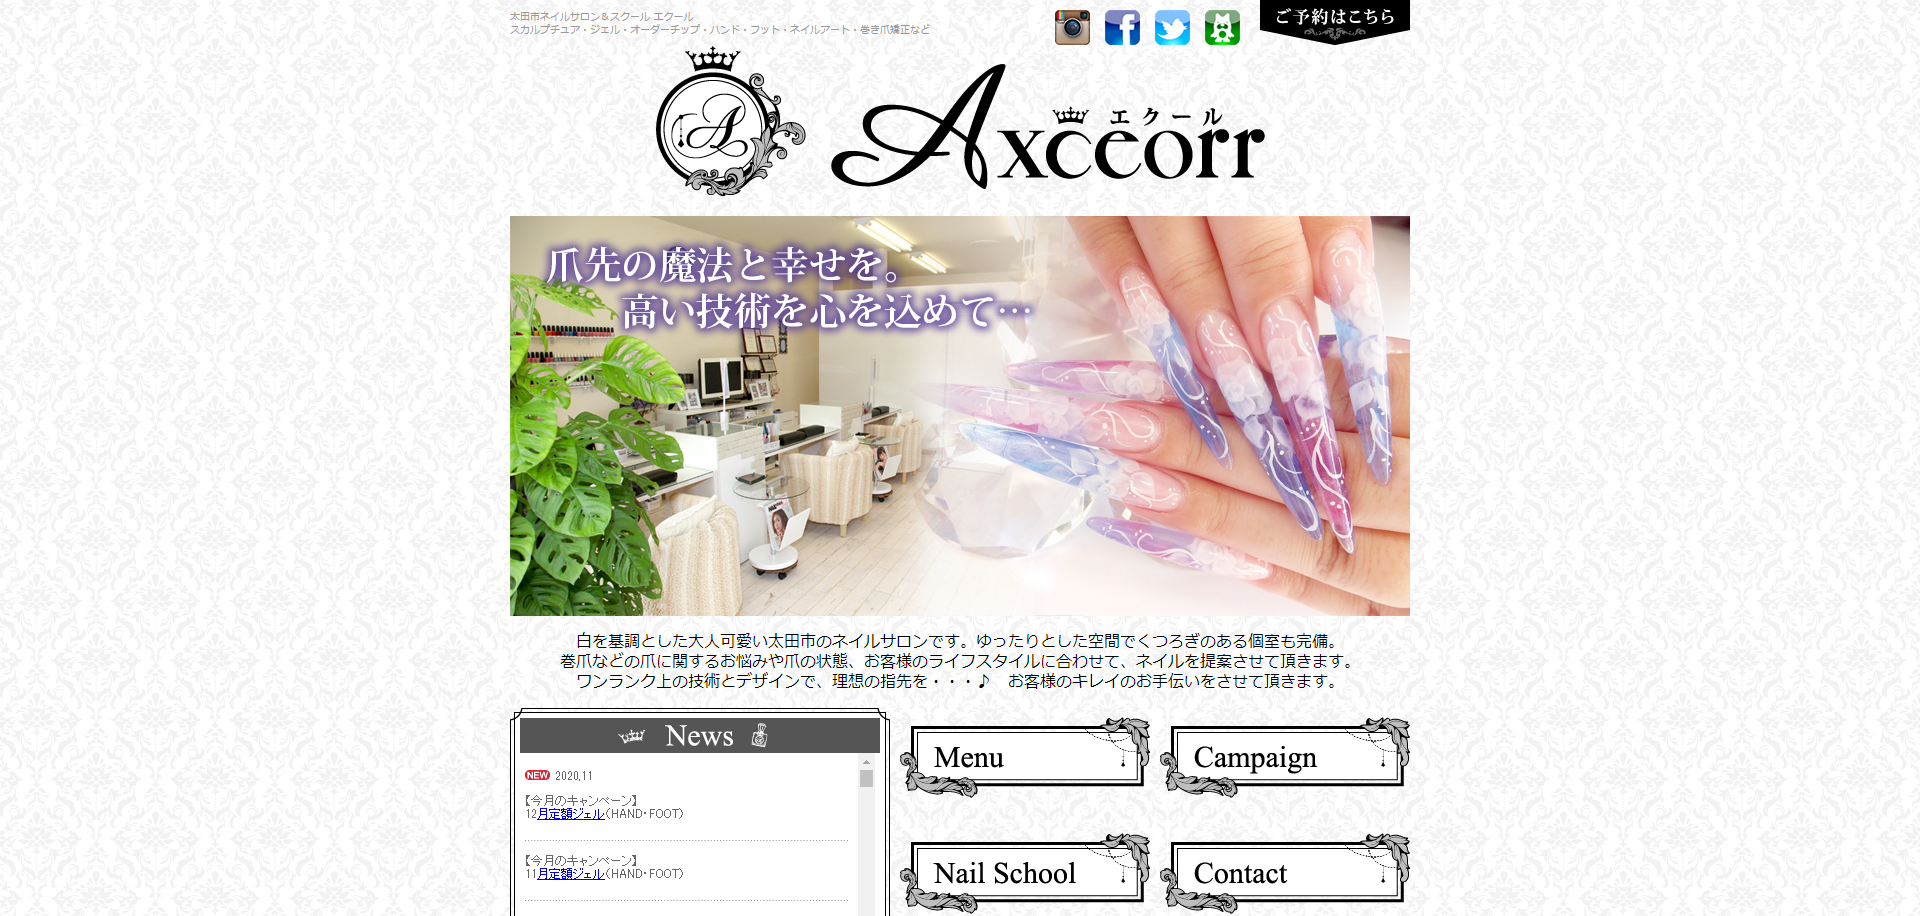 Axceorr(エクール)